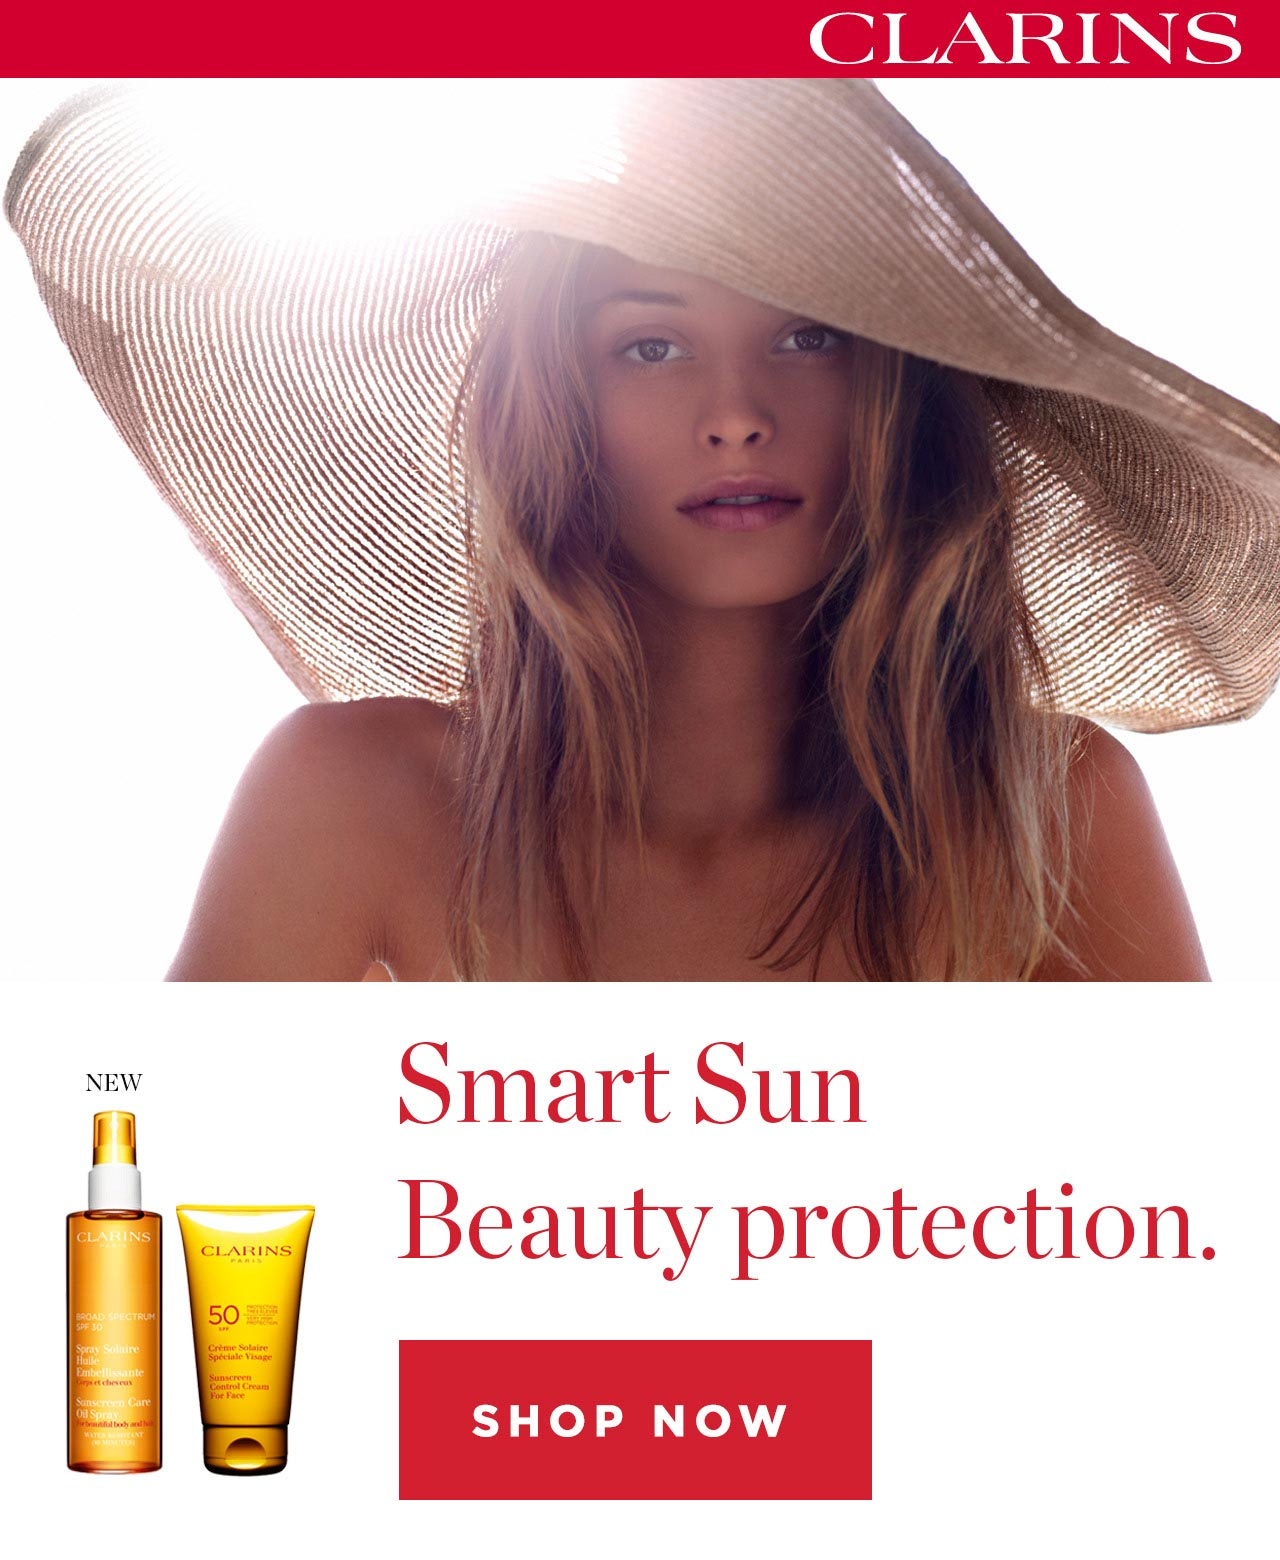 Smart Sun Beauty Protection. Clarins